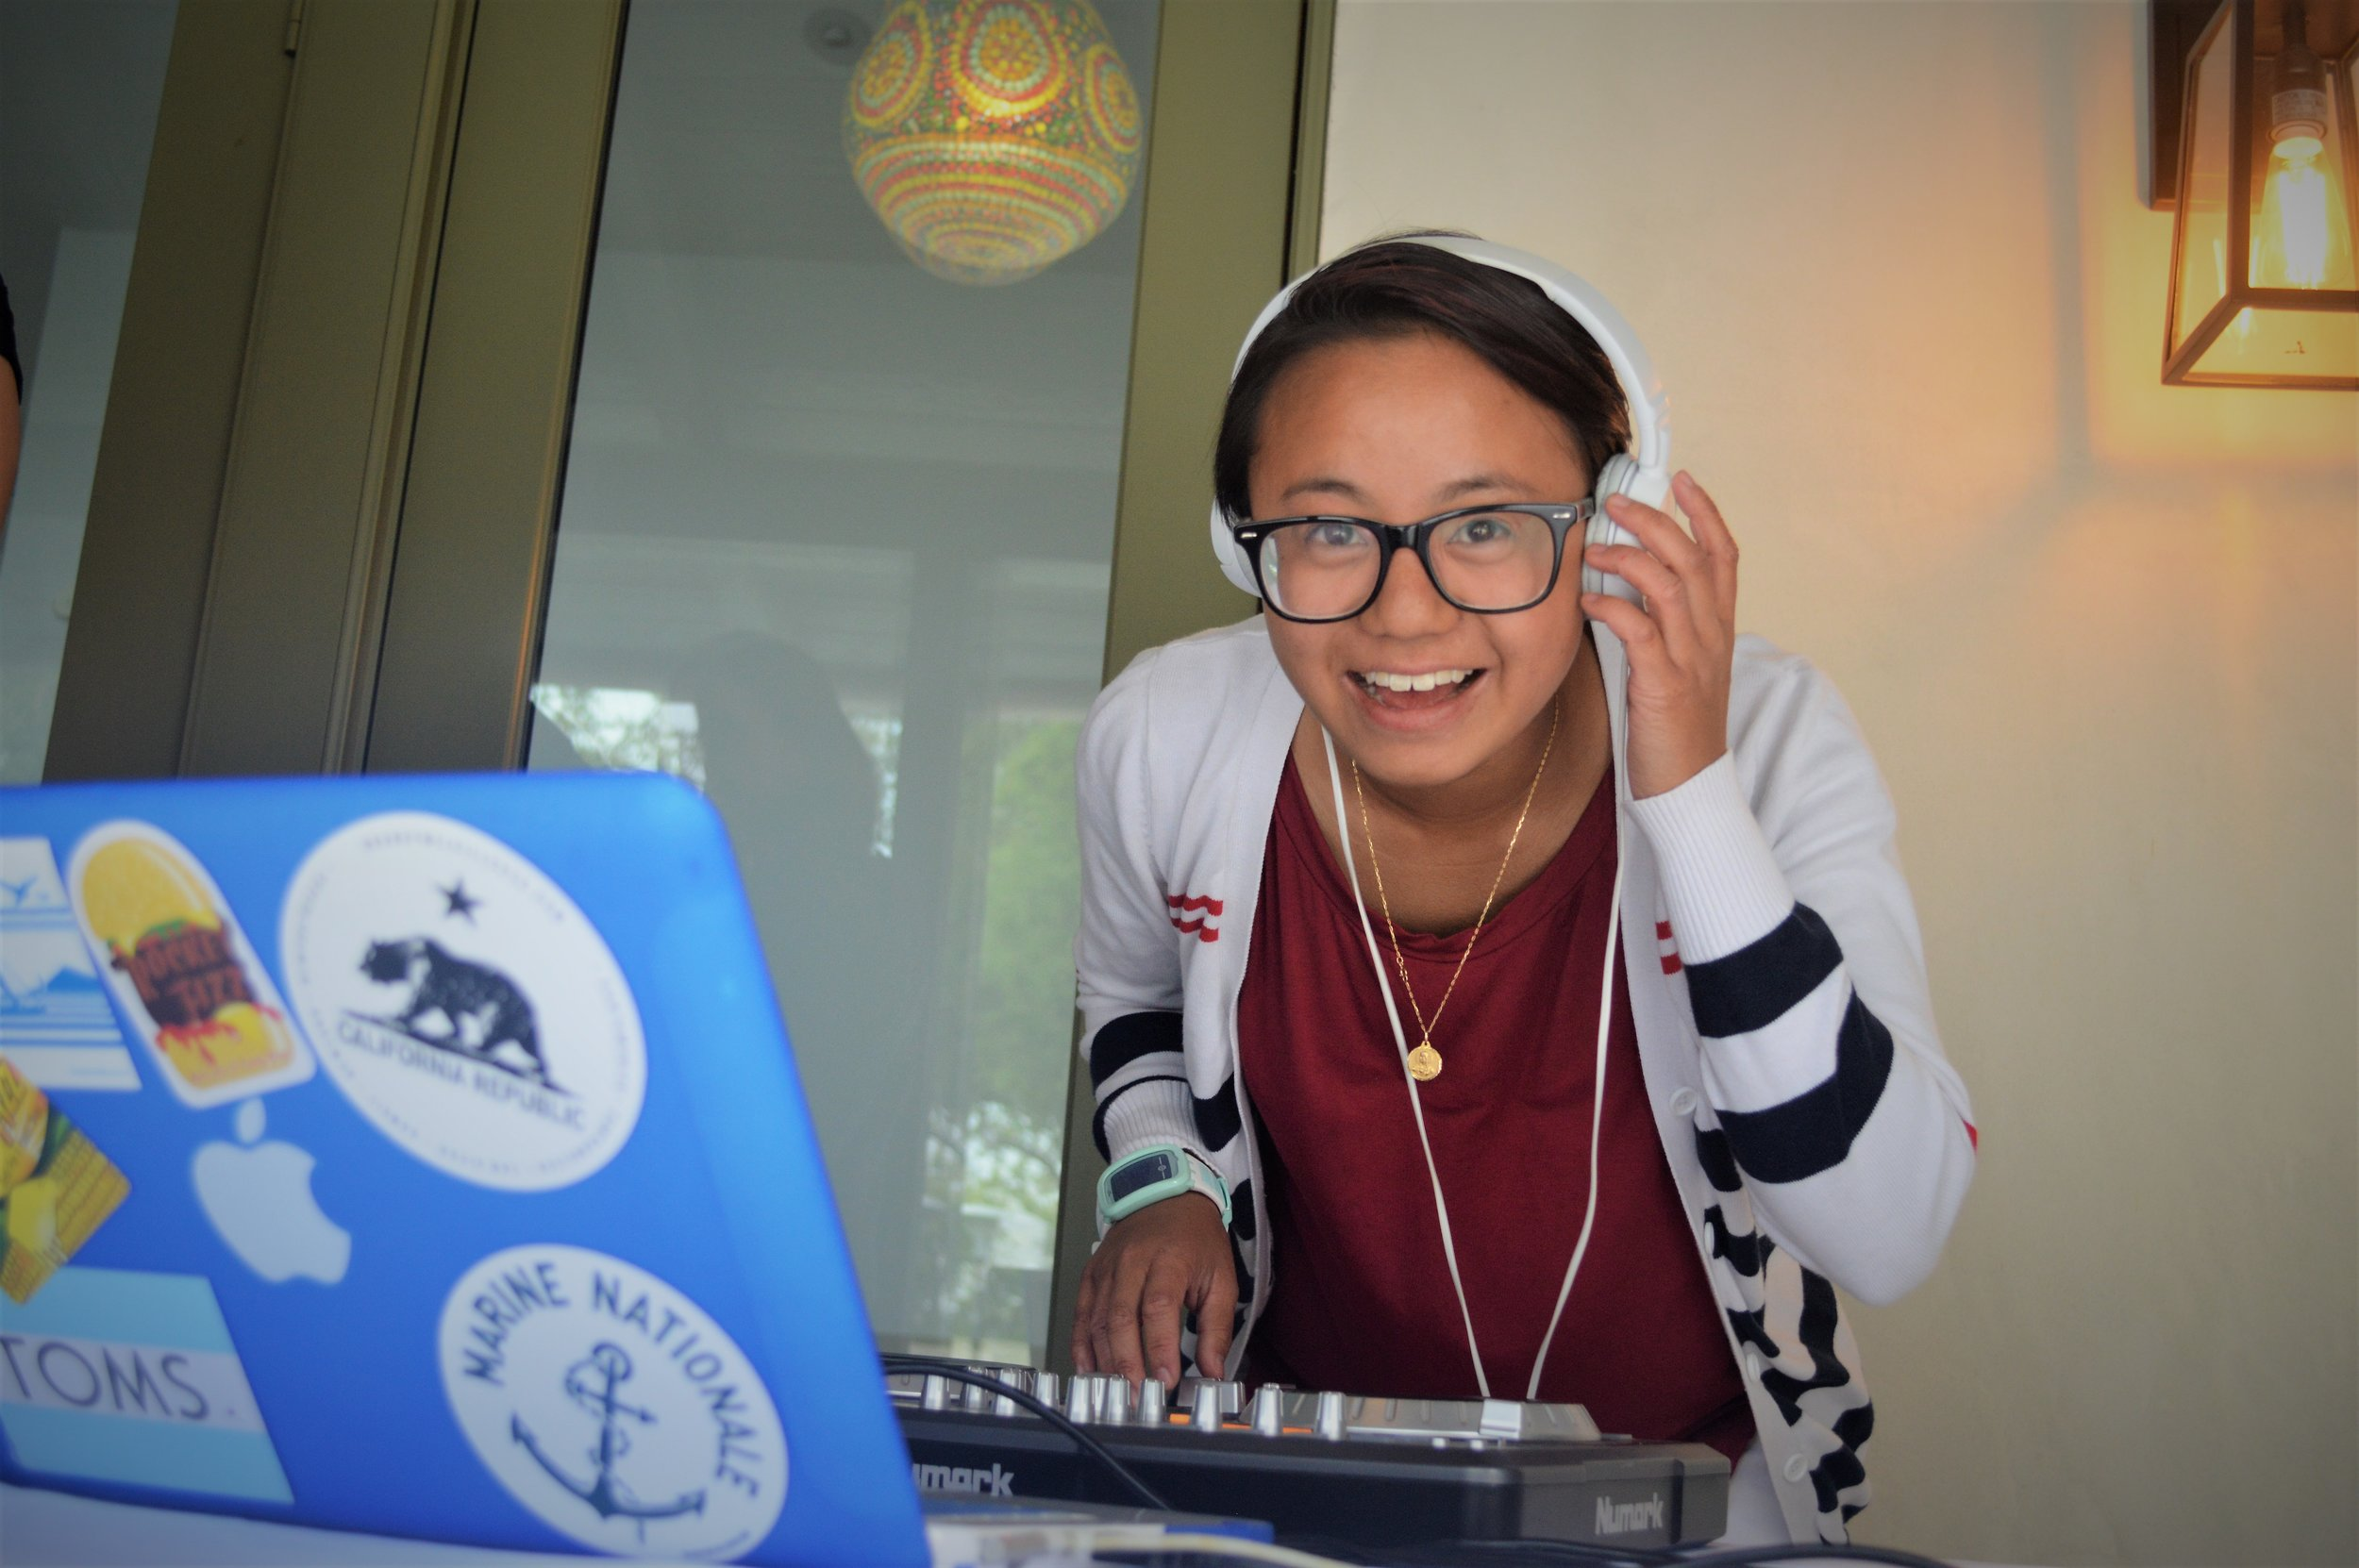 Westfield resident Marie was the party DJ